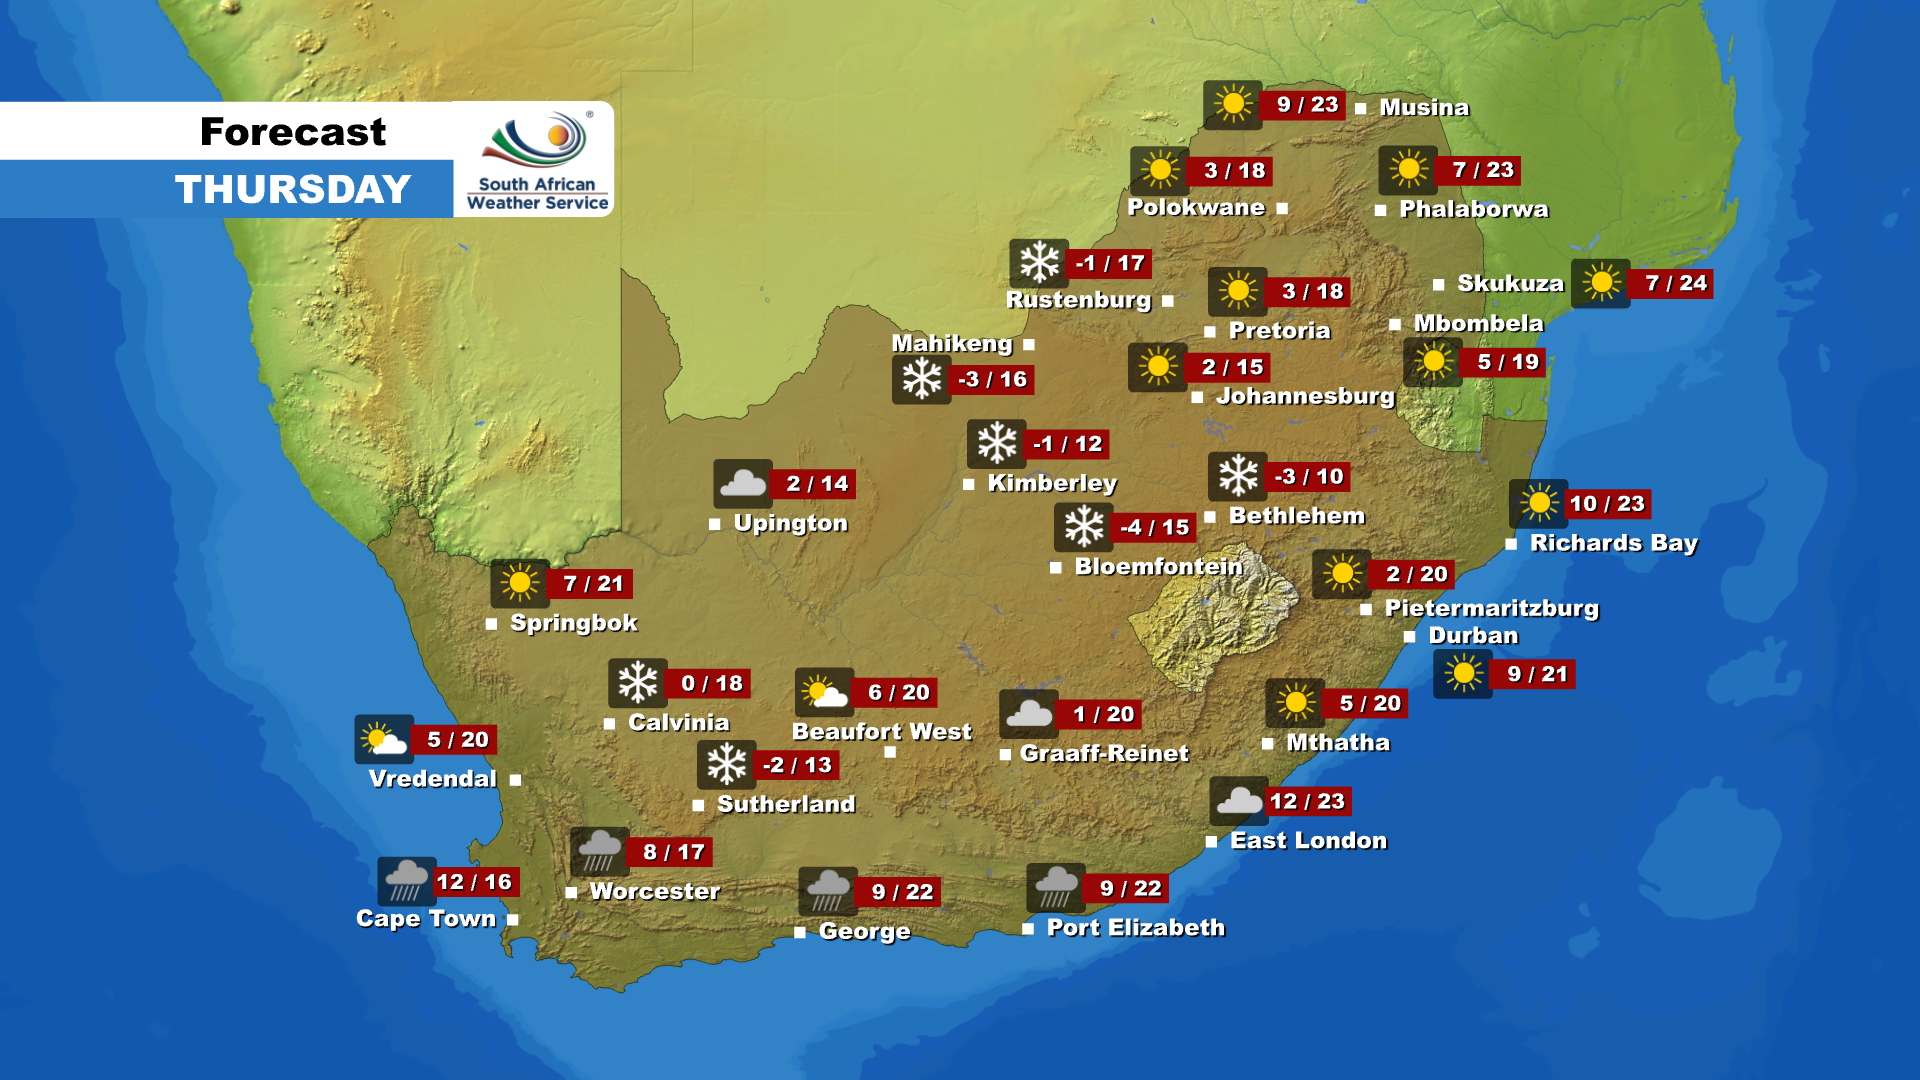 Here is the weather forecast for Thursday, 28 May 2020.